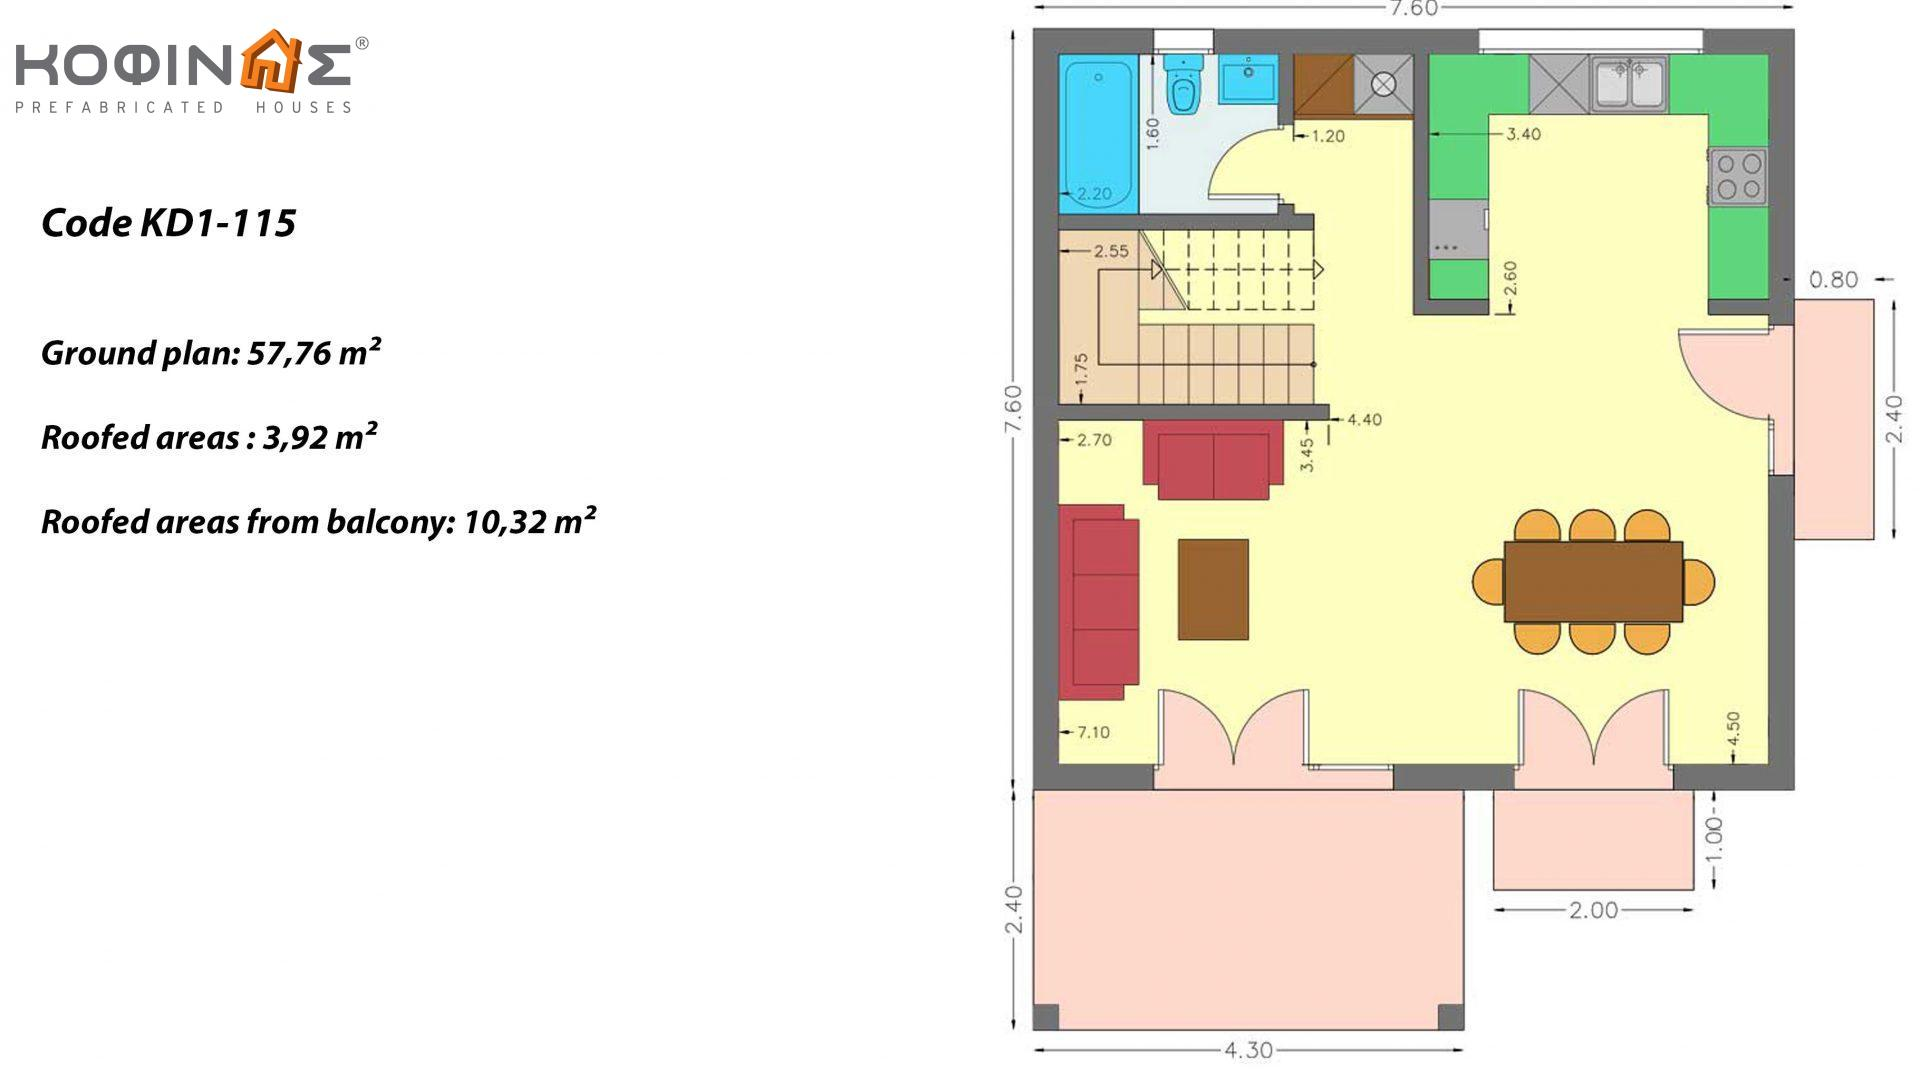 2-story house KD1-115, total surface of 115,52 m² ,roofed areas 24.56 m²,balconies 10.32 m²